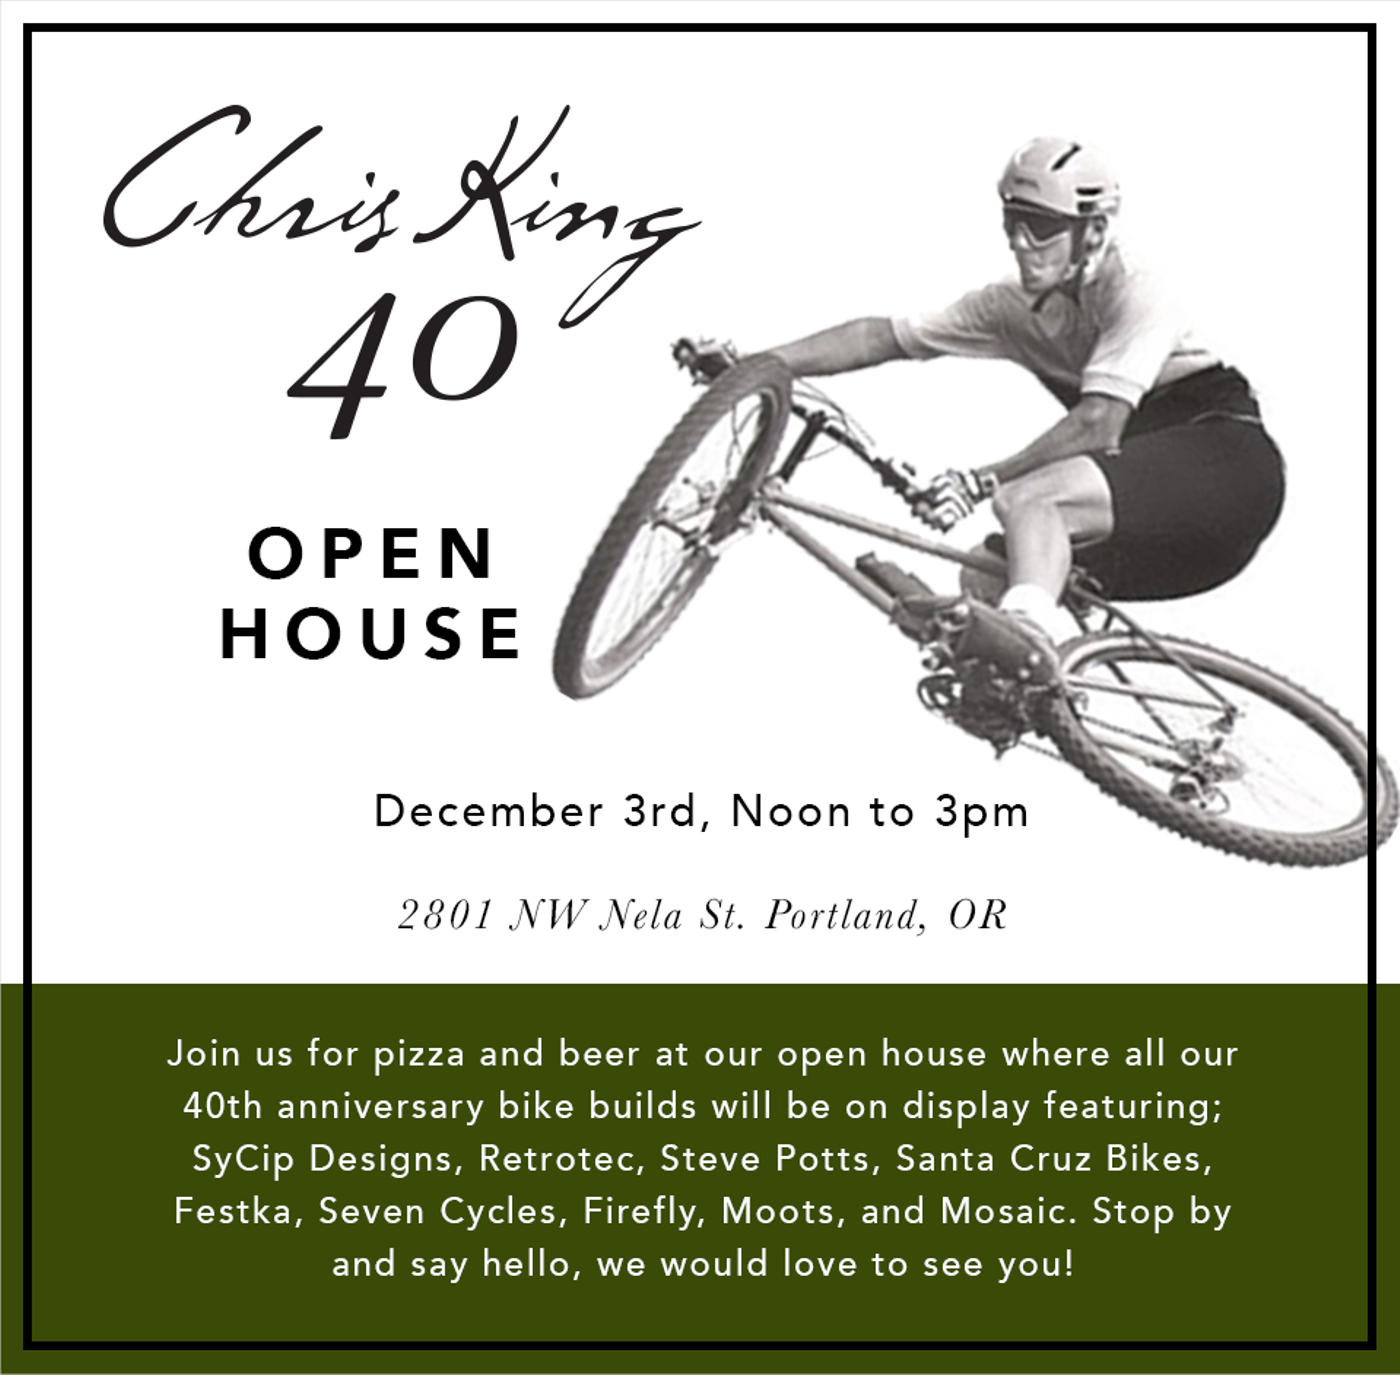 Chris King 40th Anniversary Open House Today!